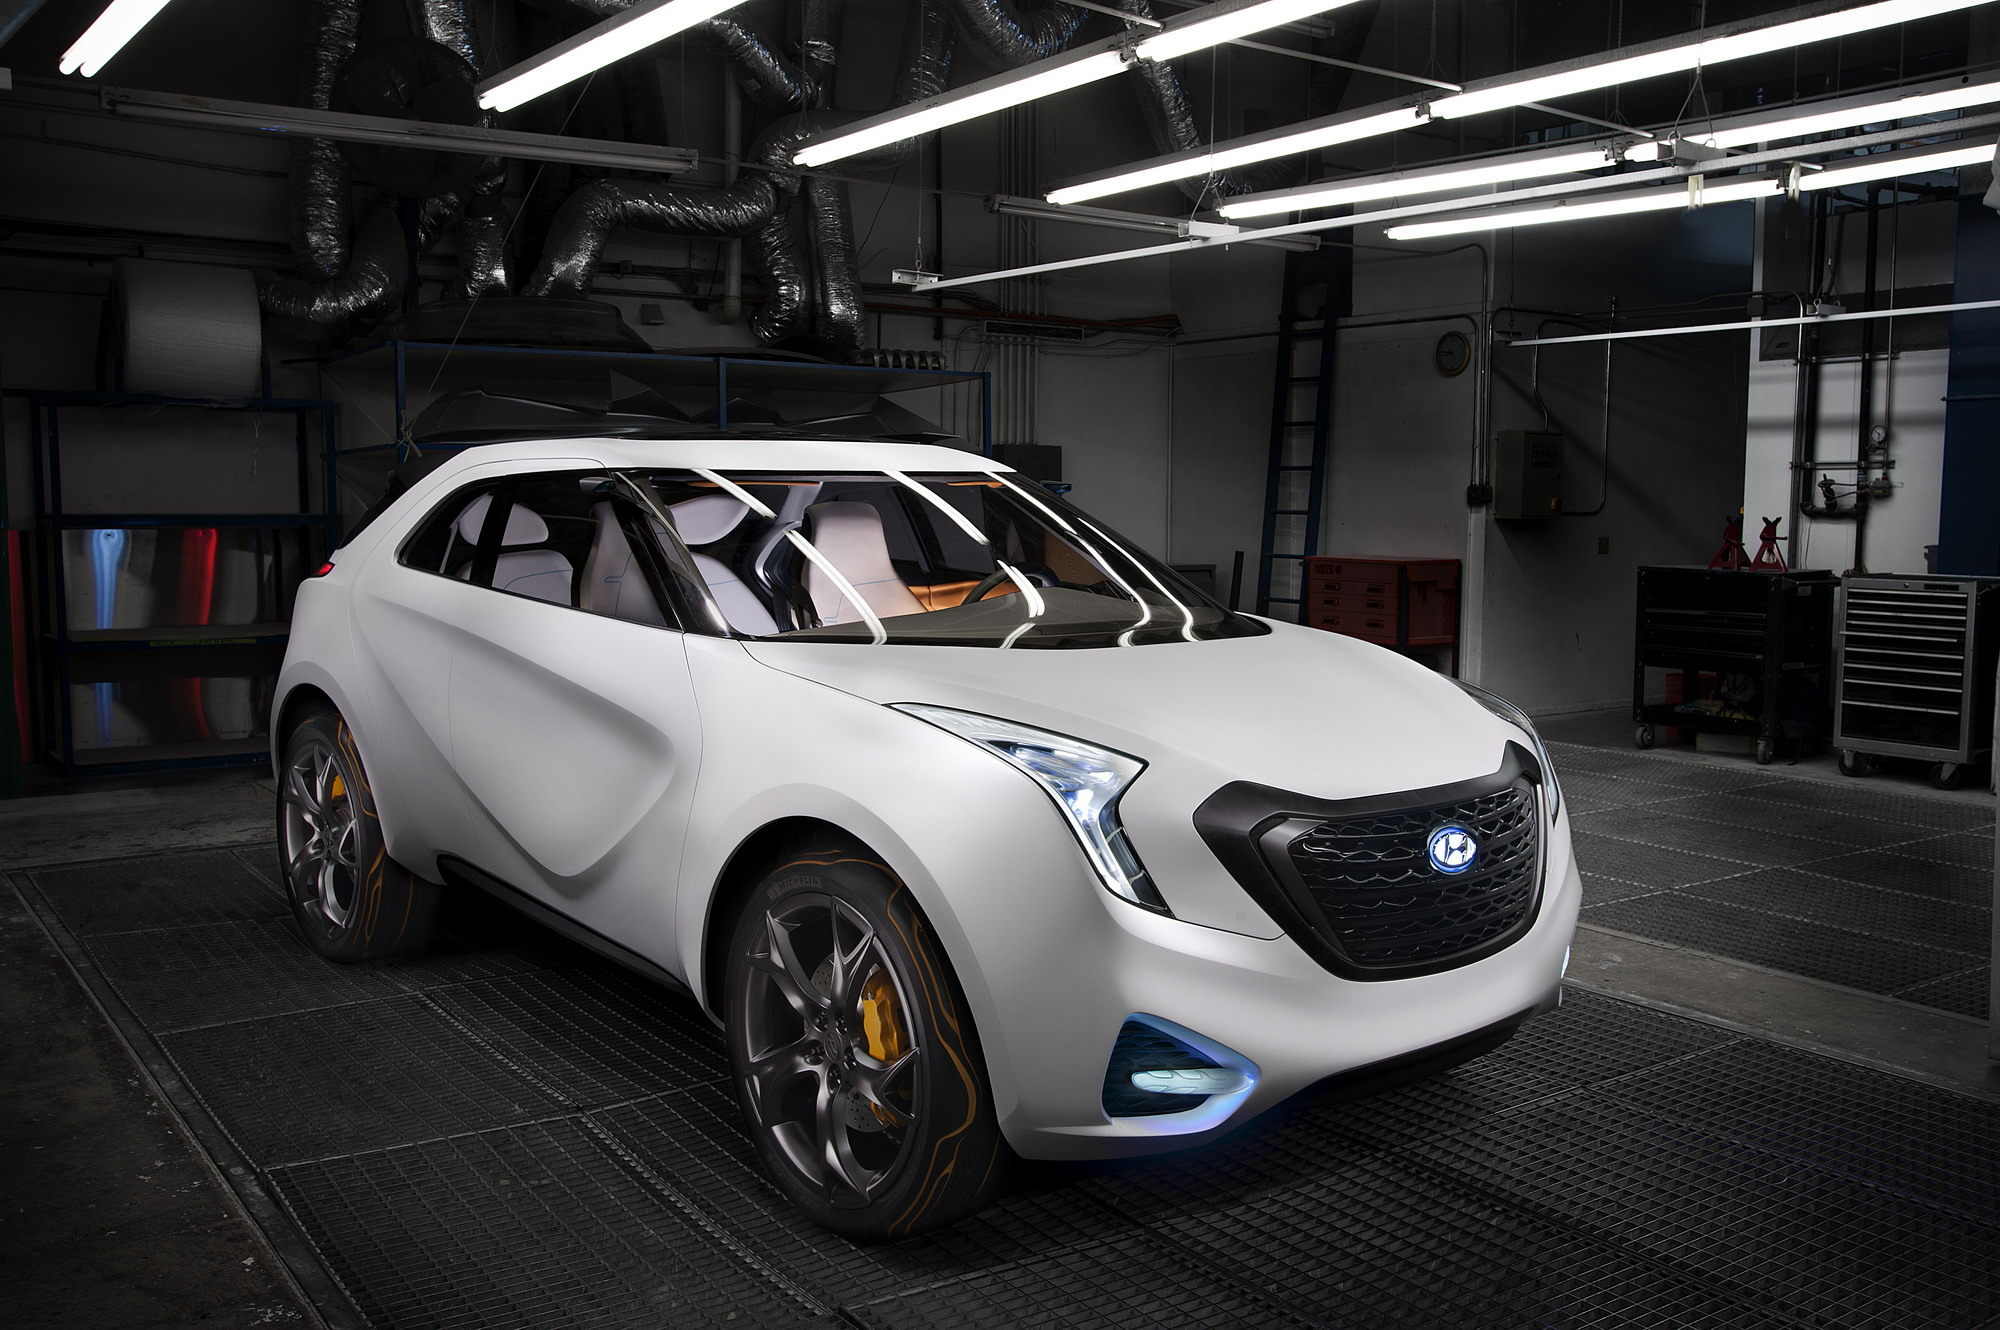 Next to the veloster sports coupe the south korean company has also brought the curb crossover concept tot he 2011 detroit auto show